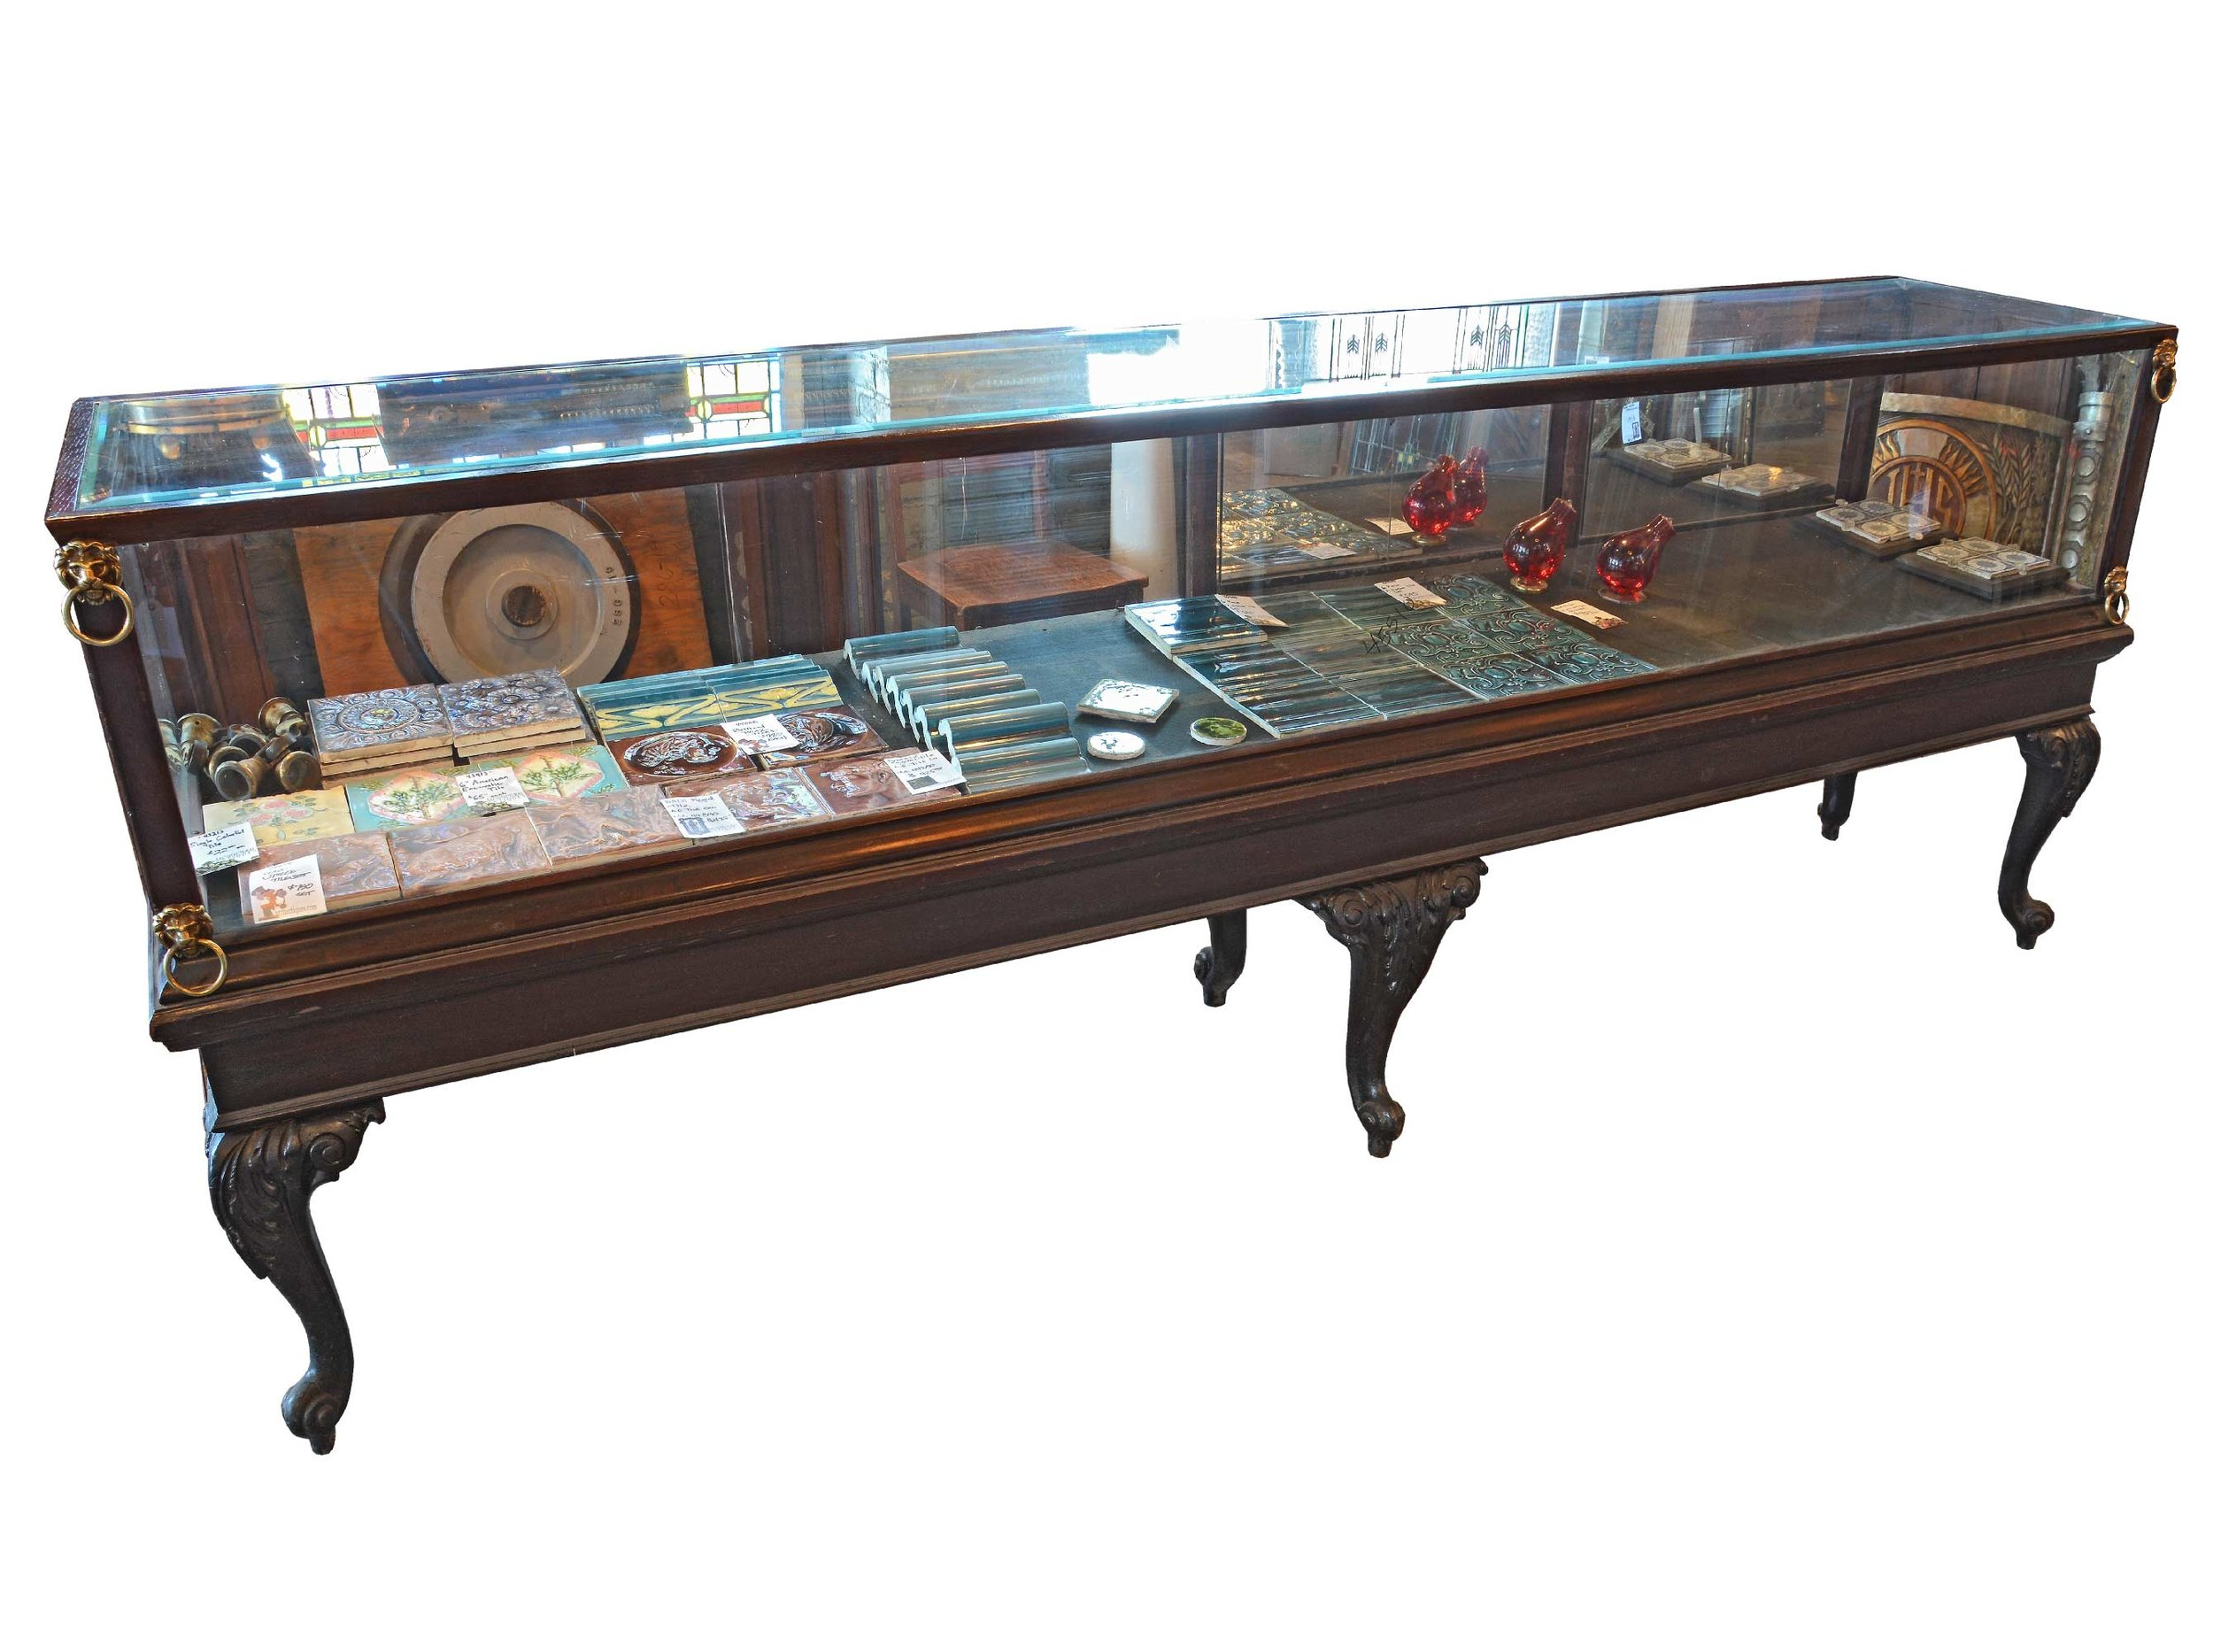 45510-display-case-with-brass-lions.jpg